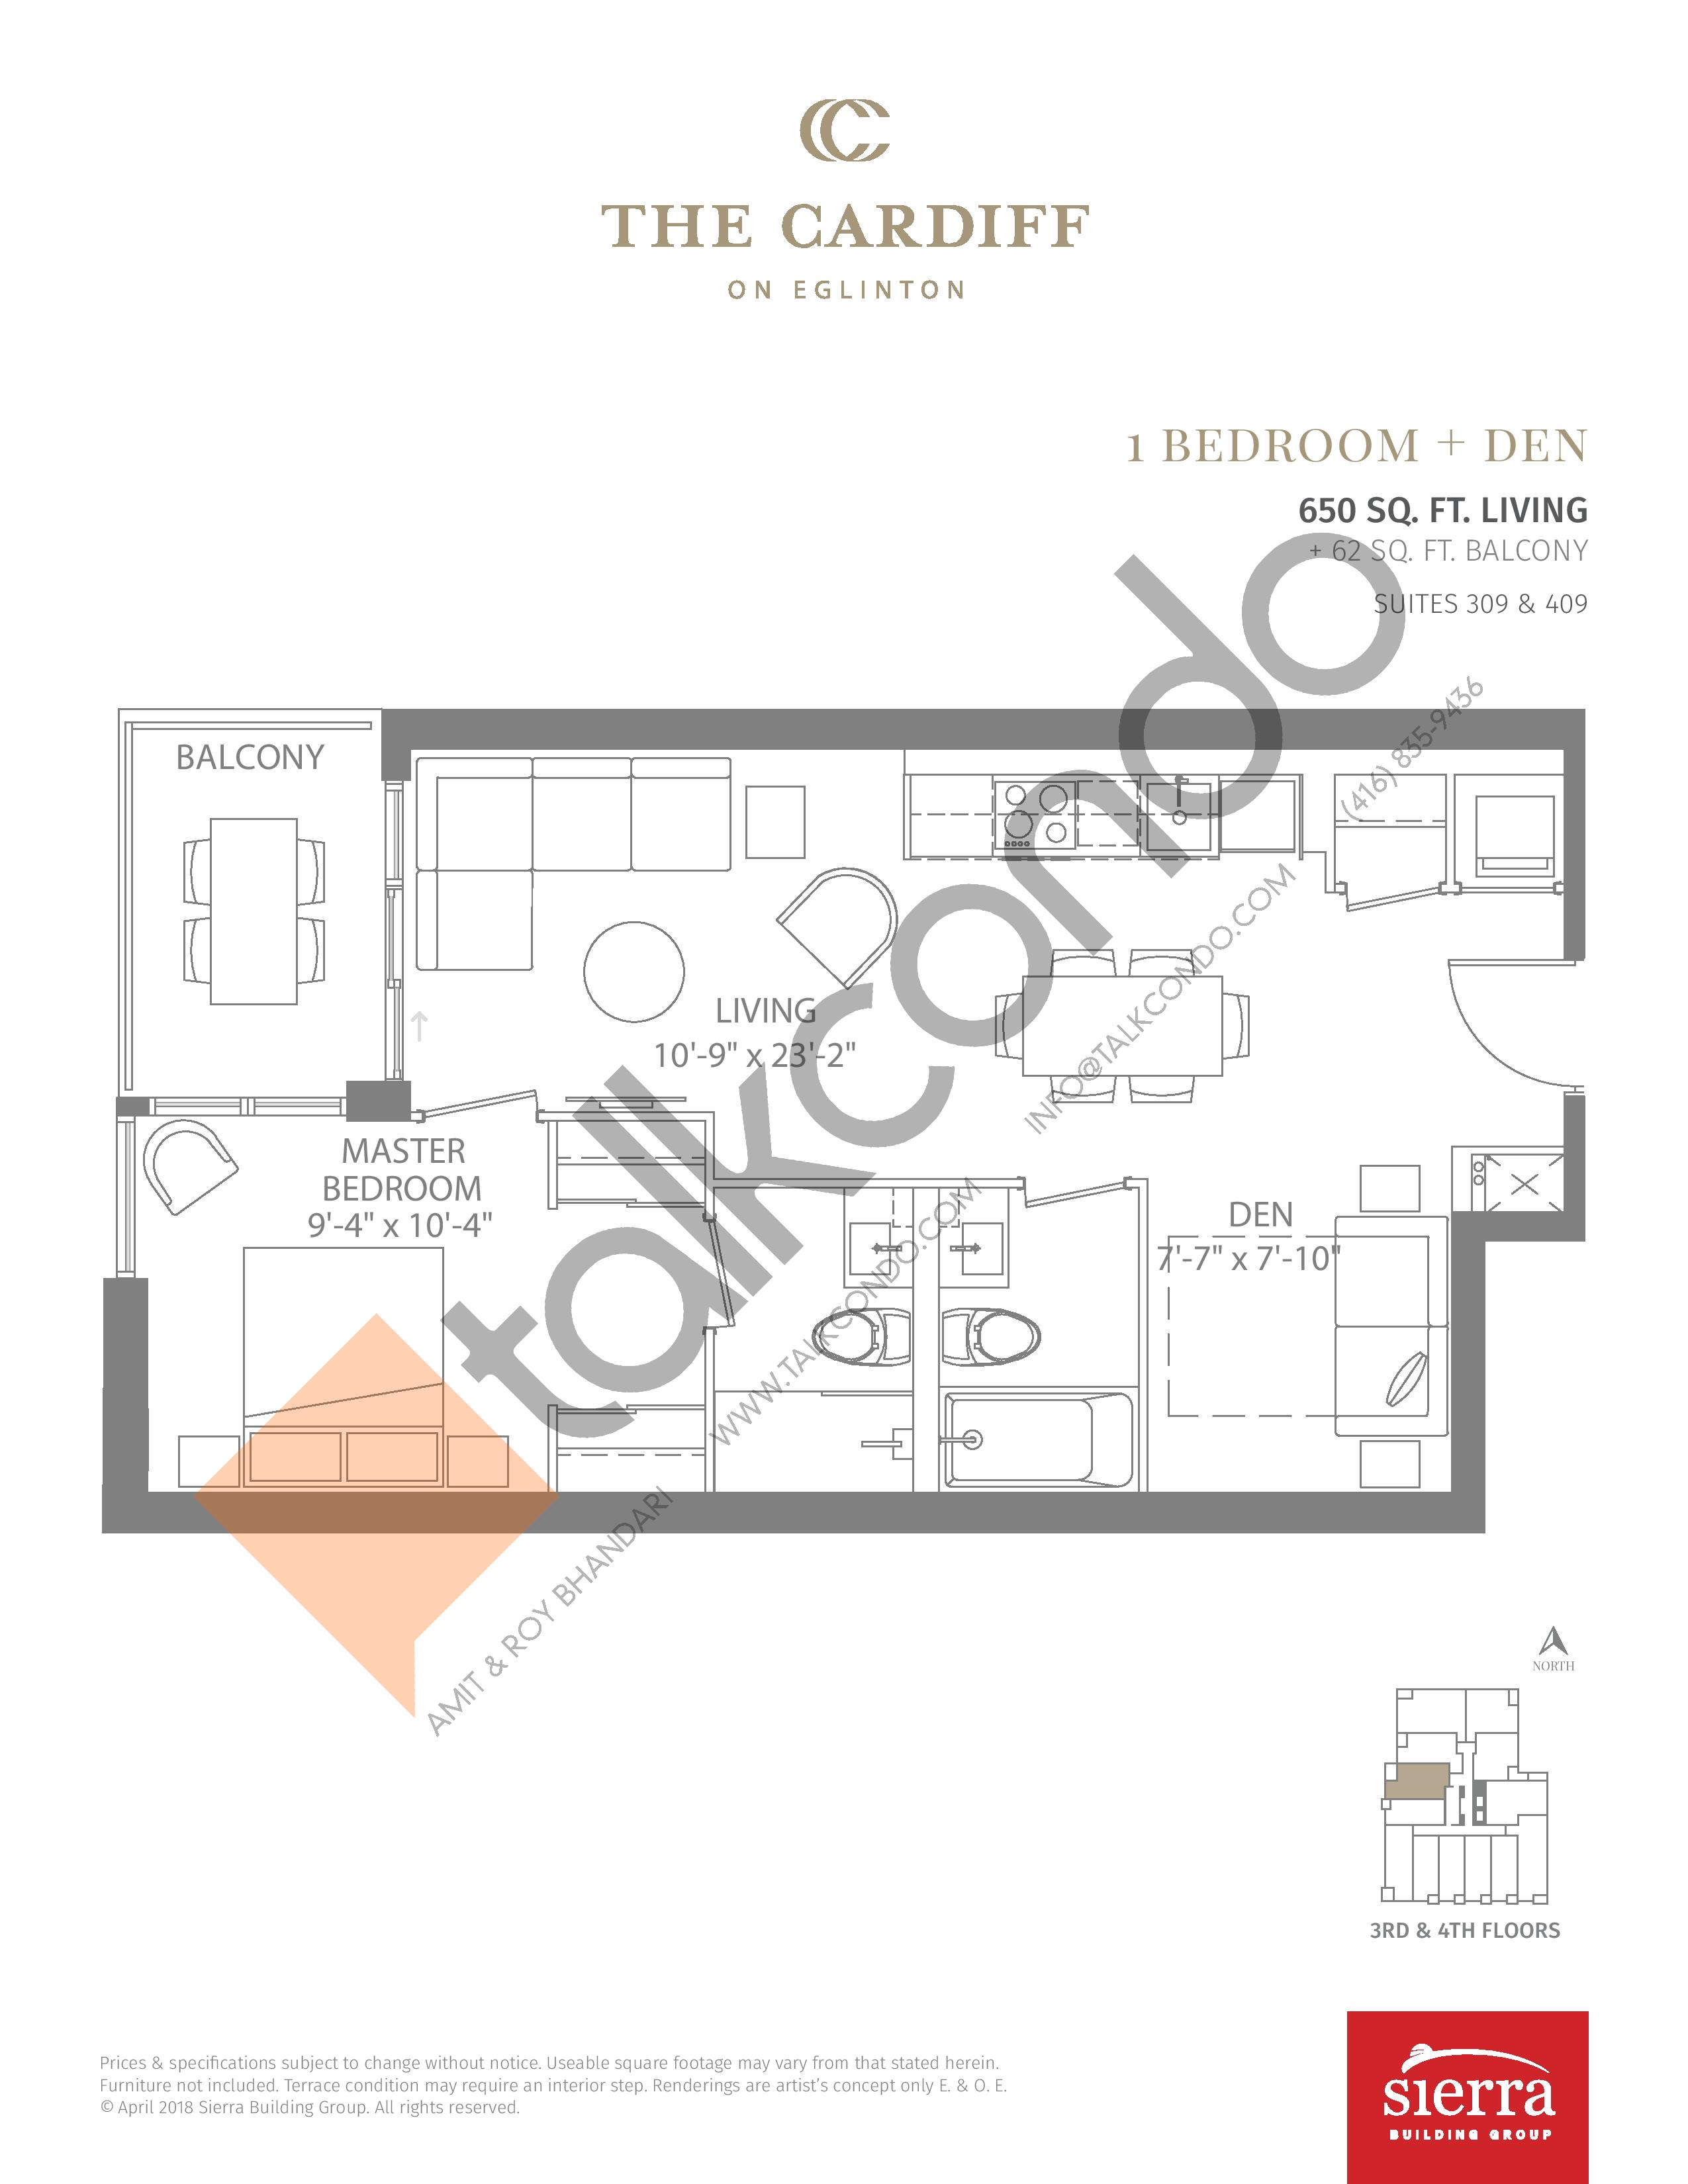 Suites 309 & 409 Floor Plan at The Cardiff Condos on Eglinton - 650 sq.ft